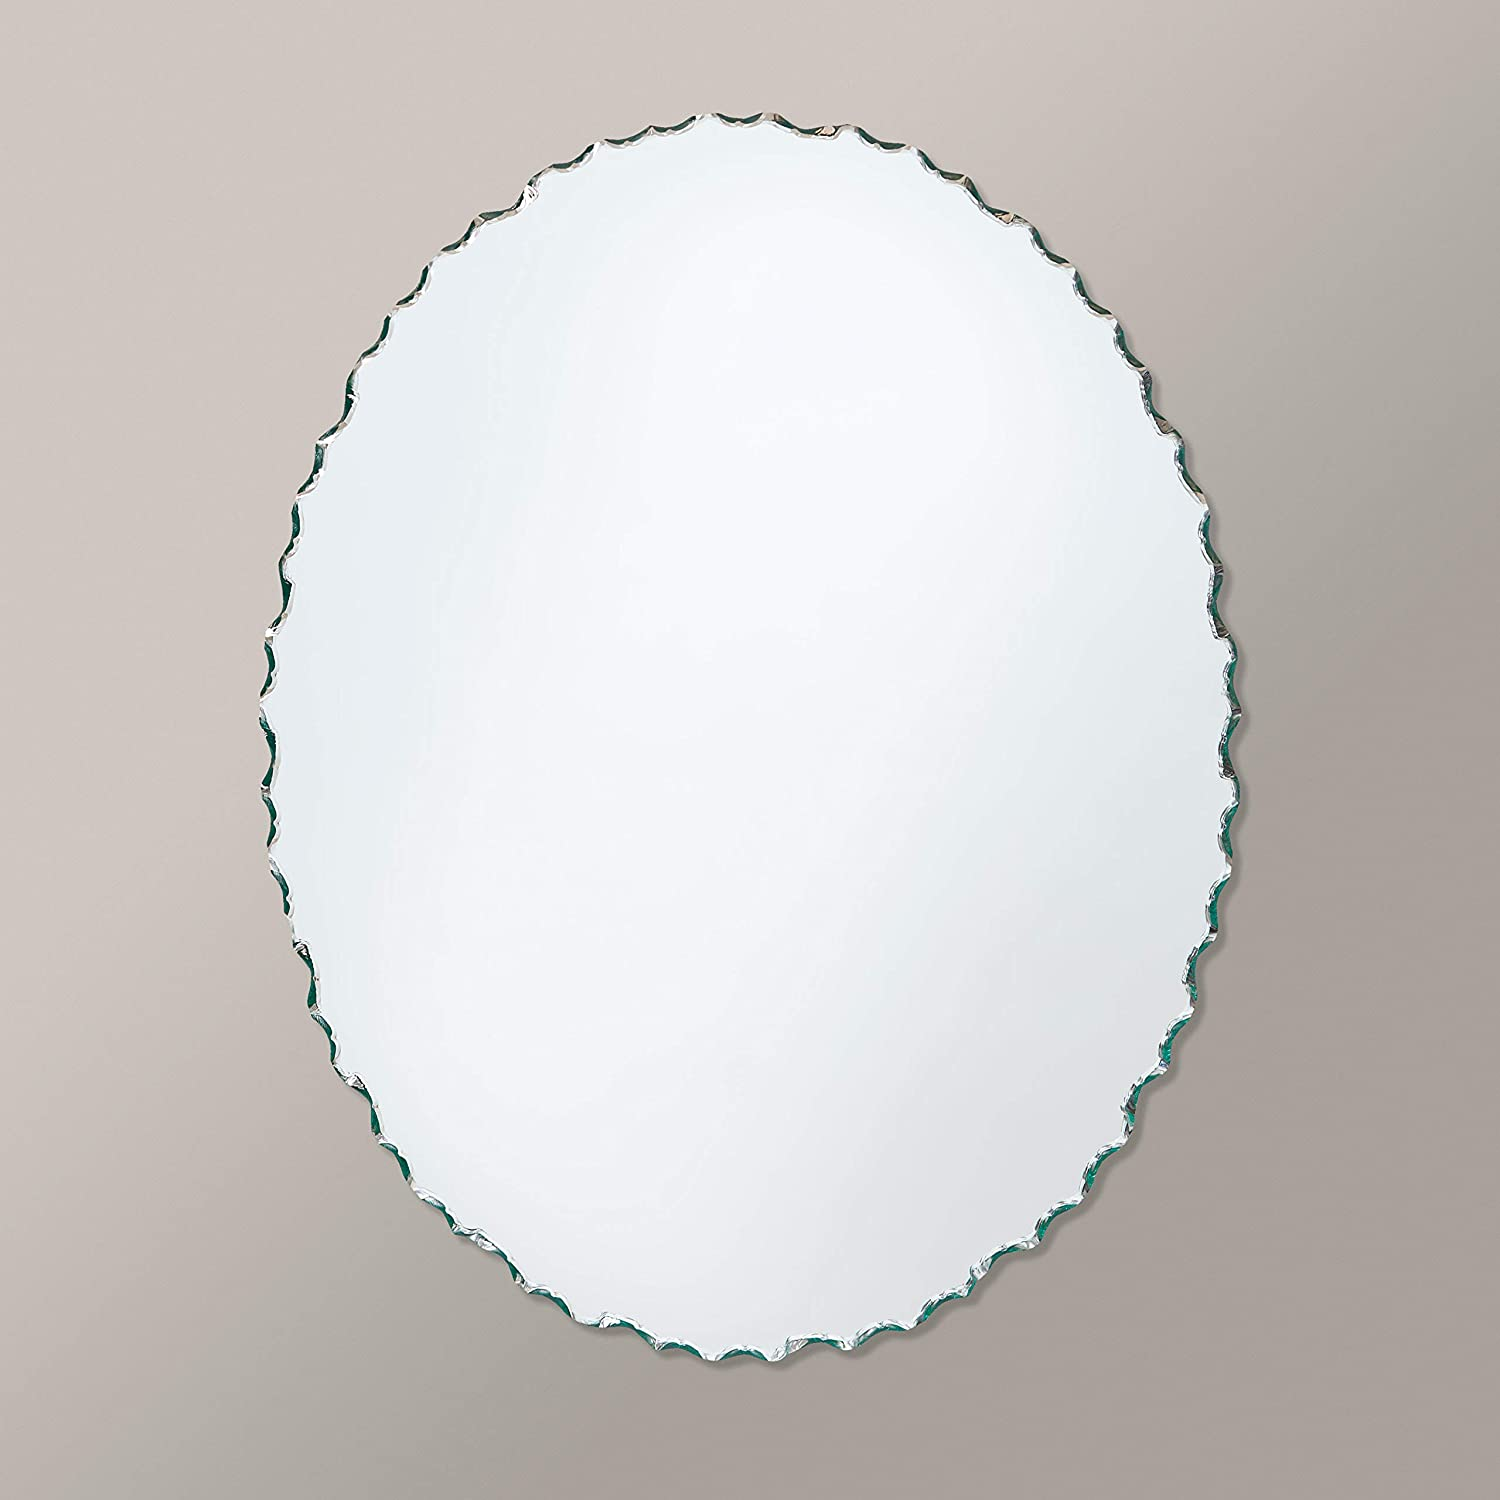 The Better Bevel Small Frameless Oval Wall Mirror Chiseled Edge Bathroom, Vanity, Bedroom Mirror 22-in x 28-in